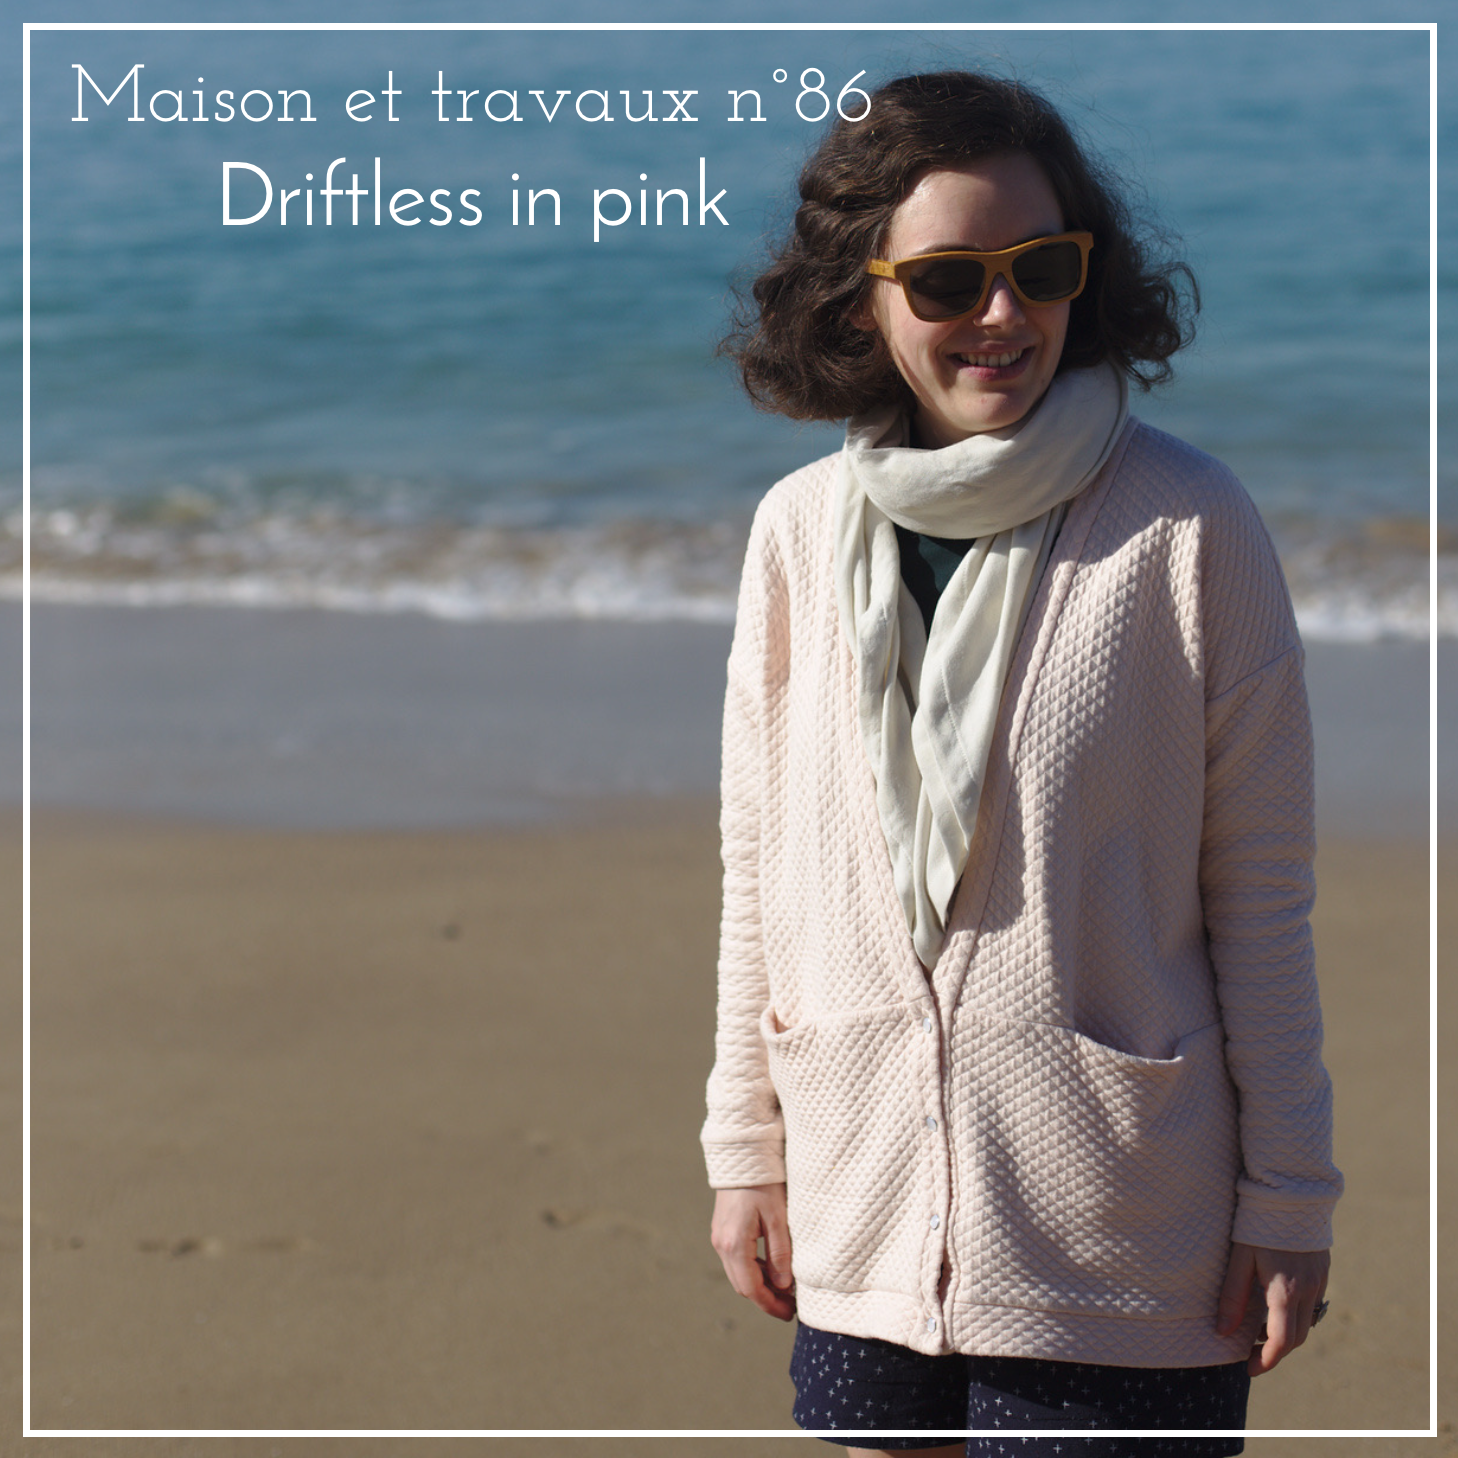 Maison et travaux - Driftless cardigan - Grainline studio - Filetik